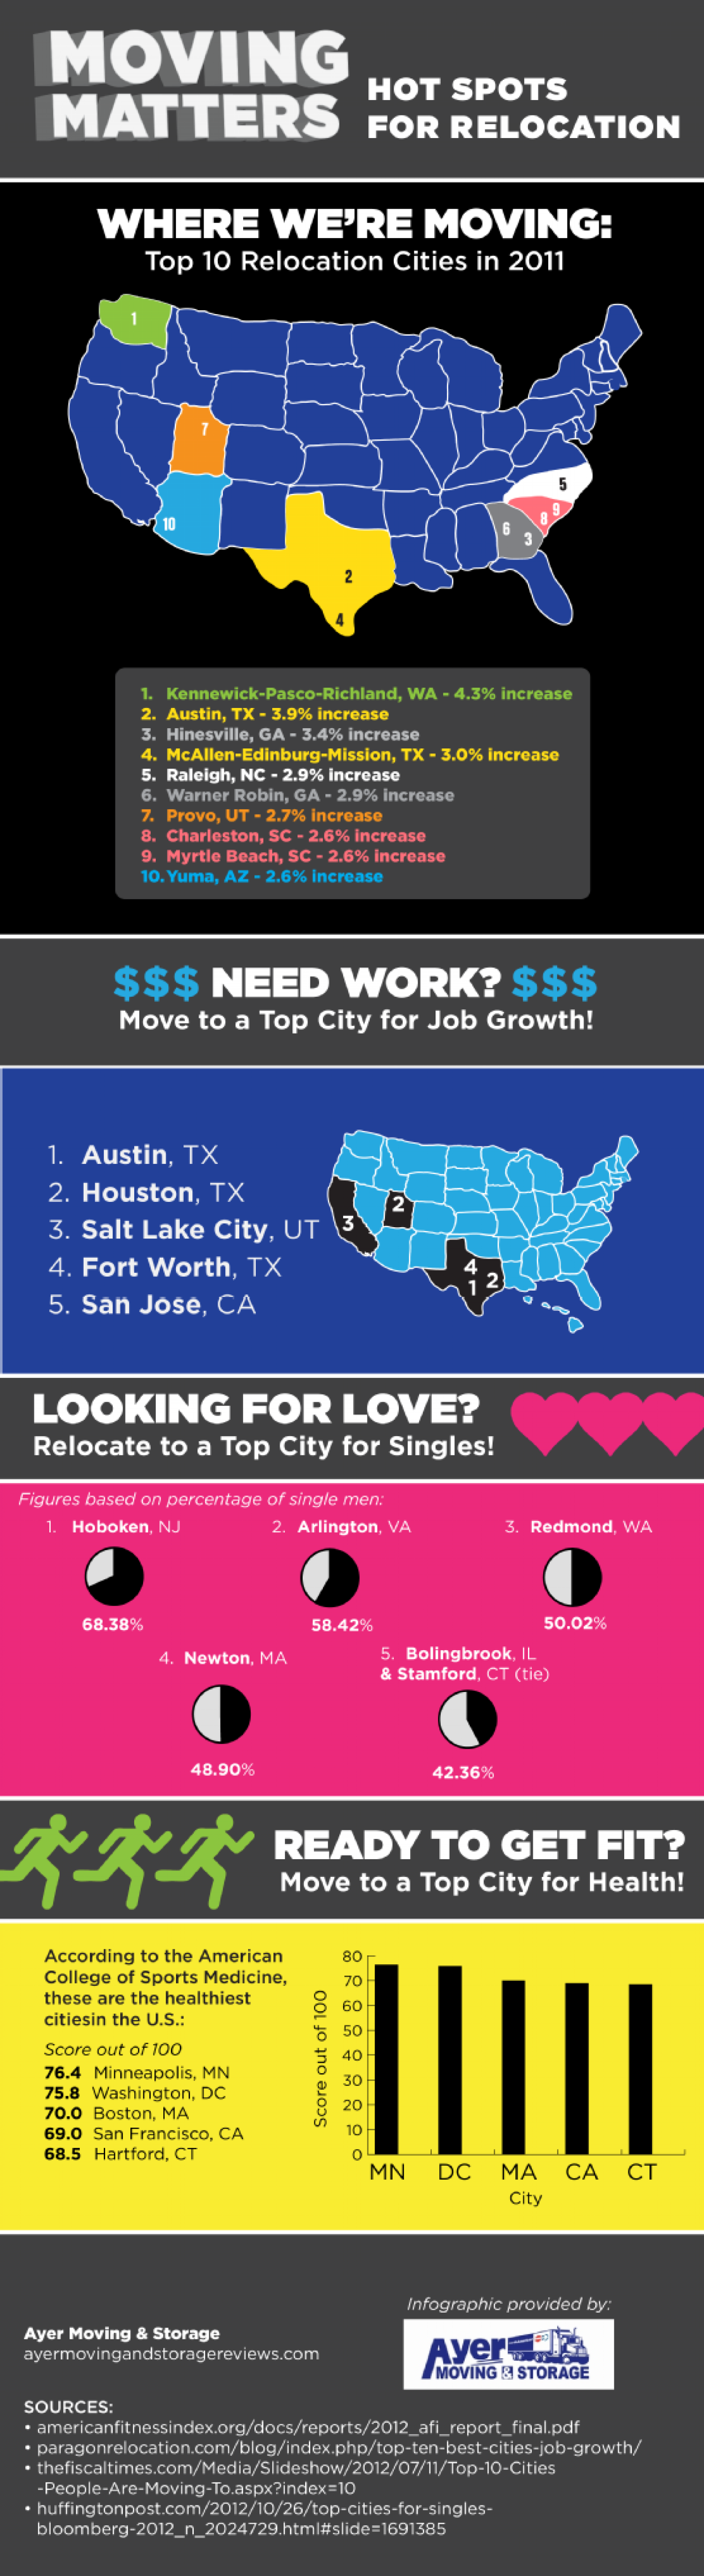 Moving Matters: Hot Spots for Relocation Infographic